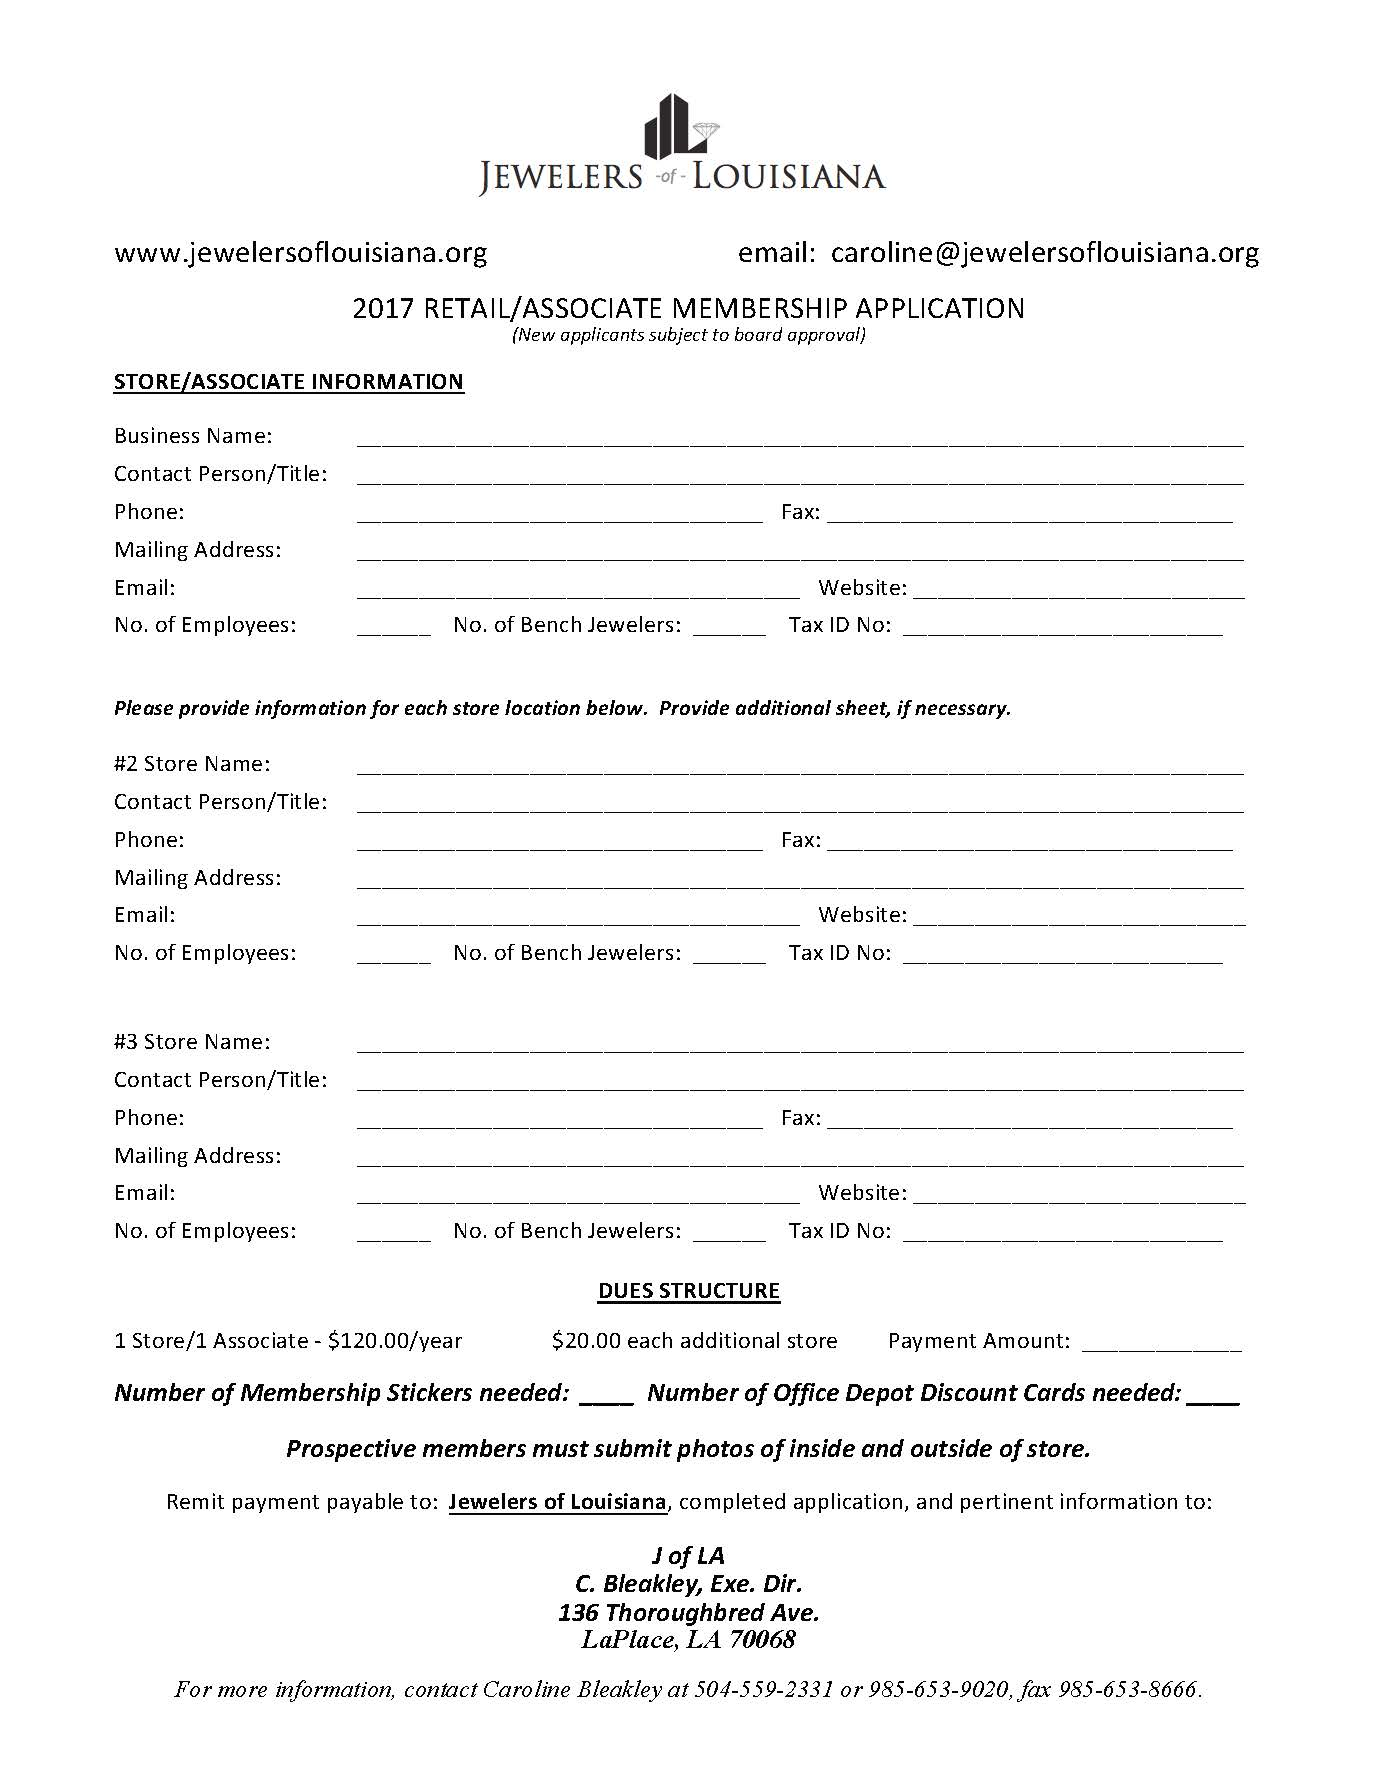 MEMBERSHIP APPLICATION 2017